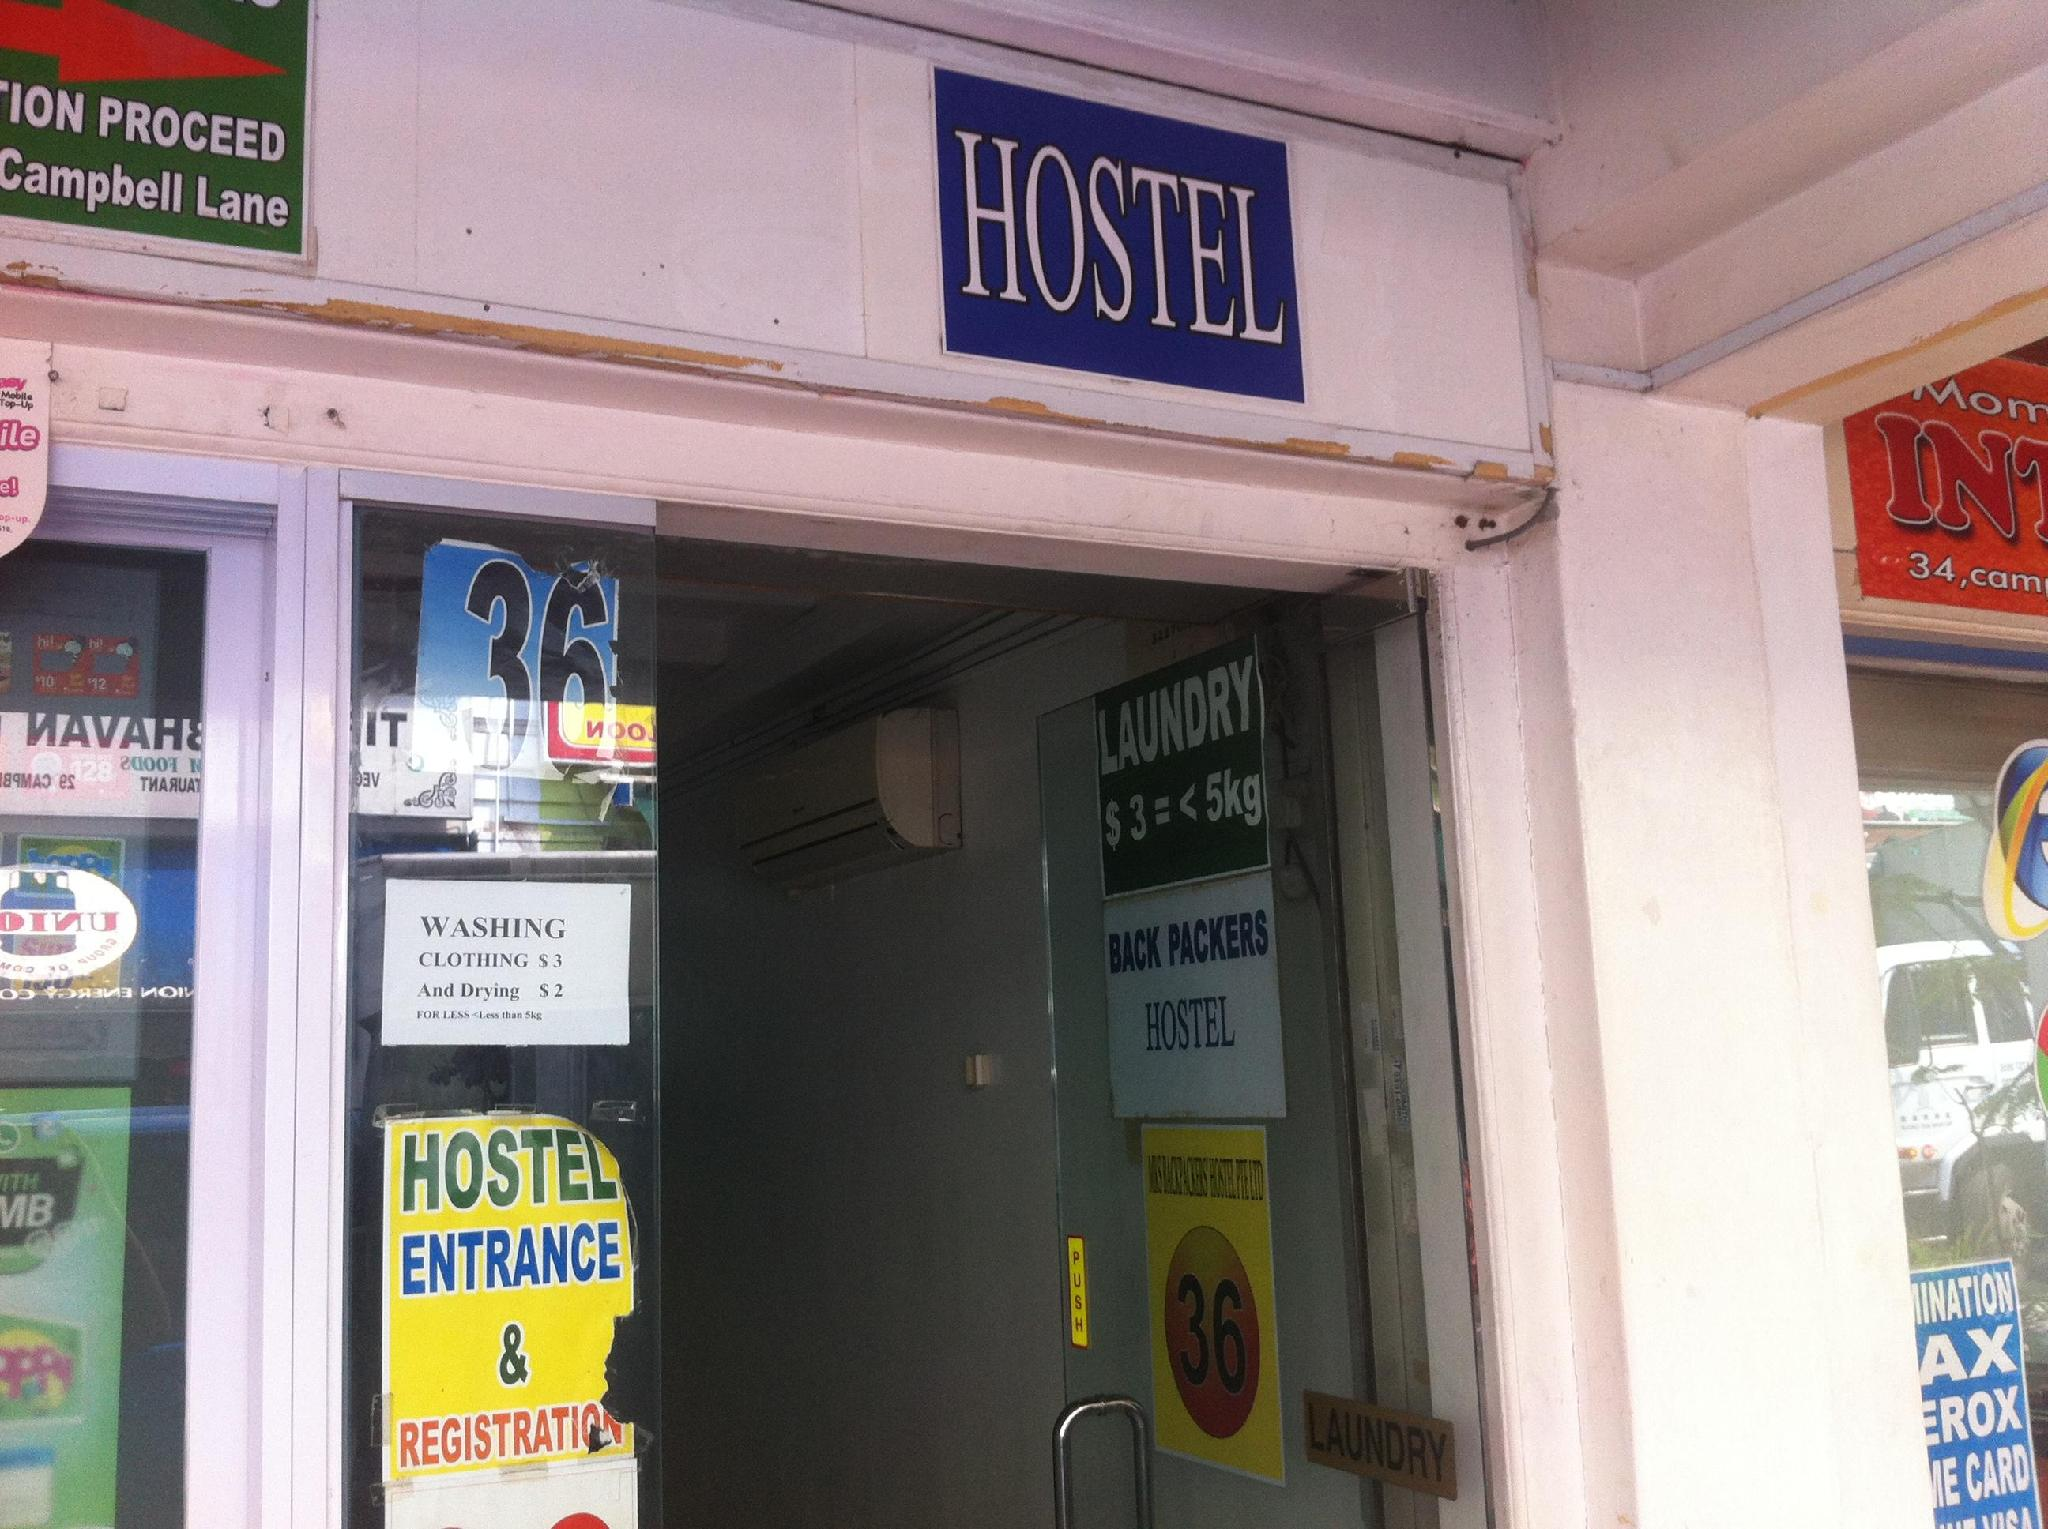 MKS Backpackers Hostel – Campbell Lane